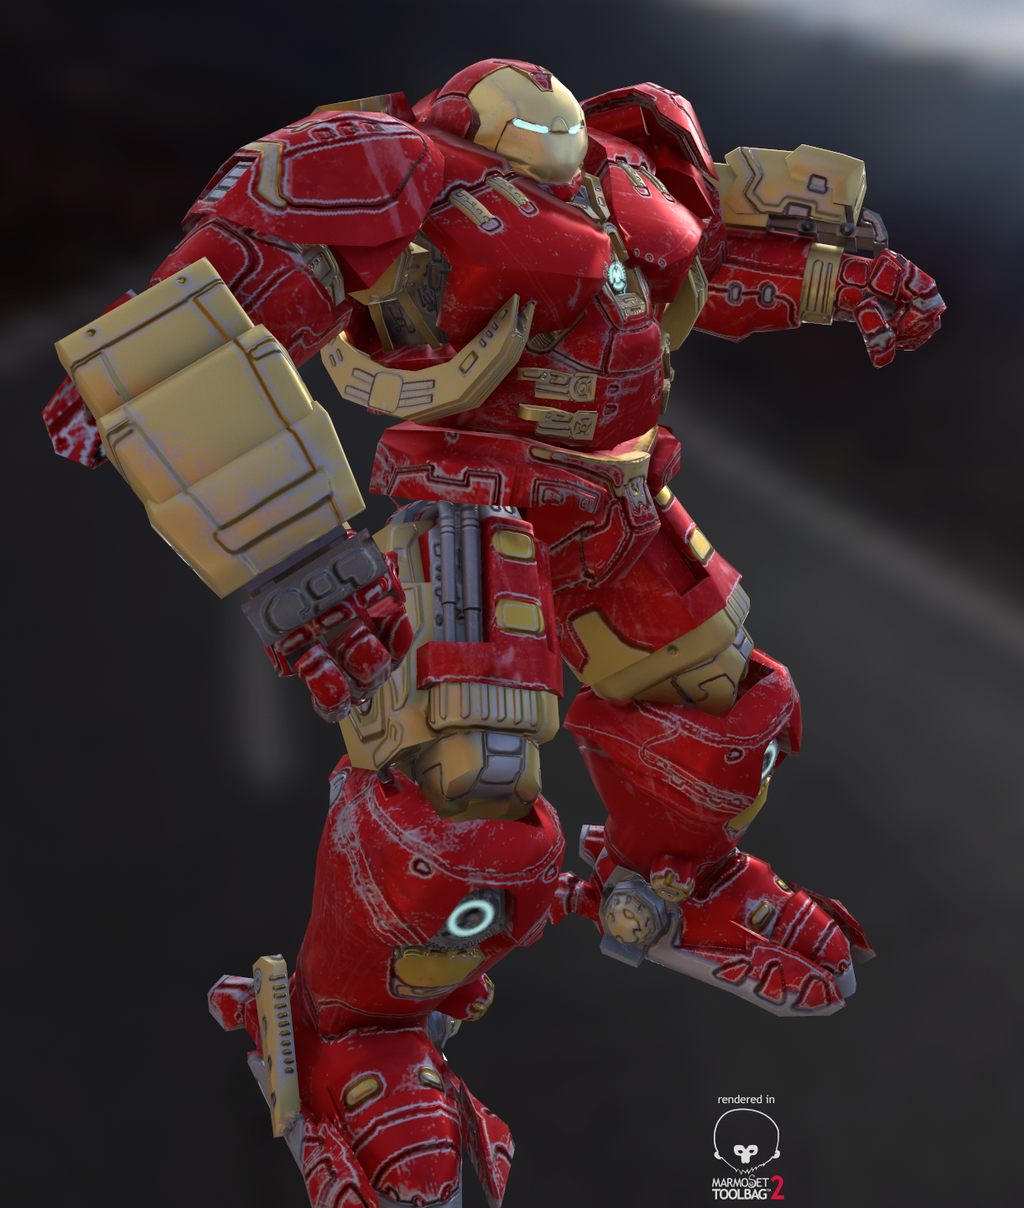 Avengers Age Of Ultron By Iloegbunam On Deviantart: Hulkbuster-Avengers- Age Of Ultron By Natakishinji On